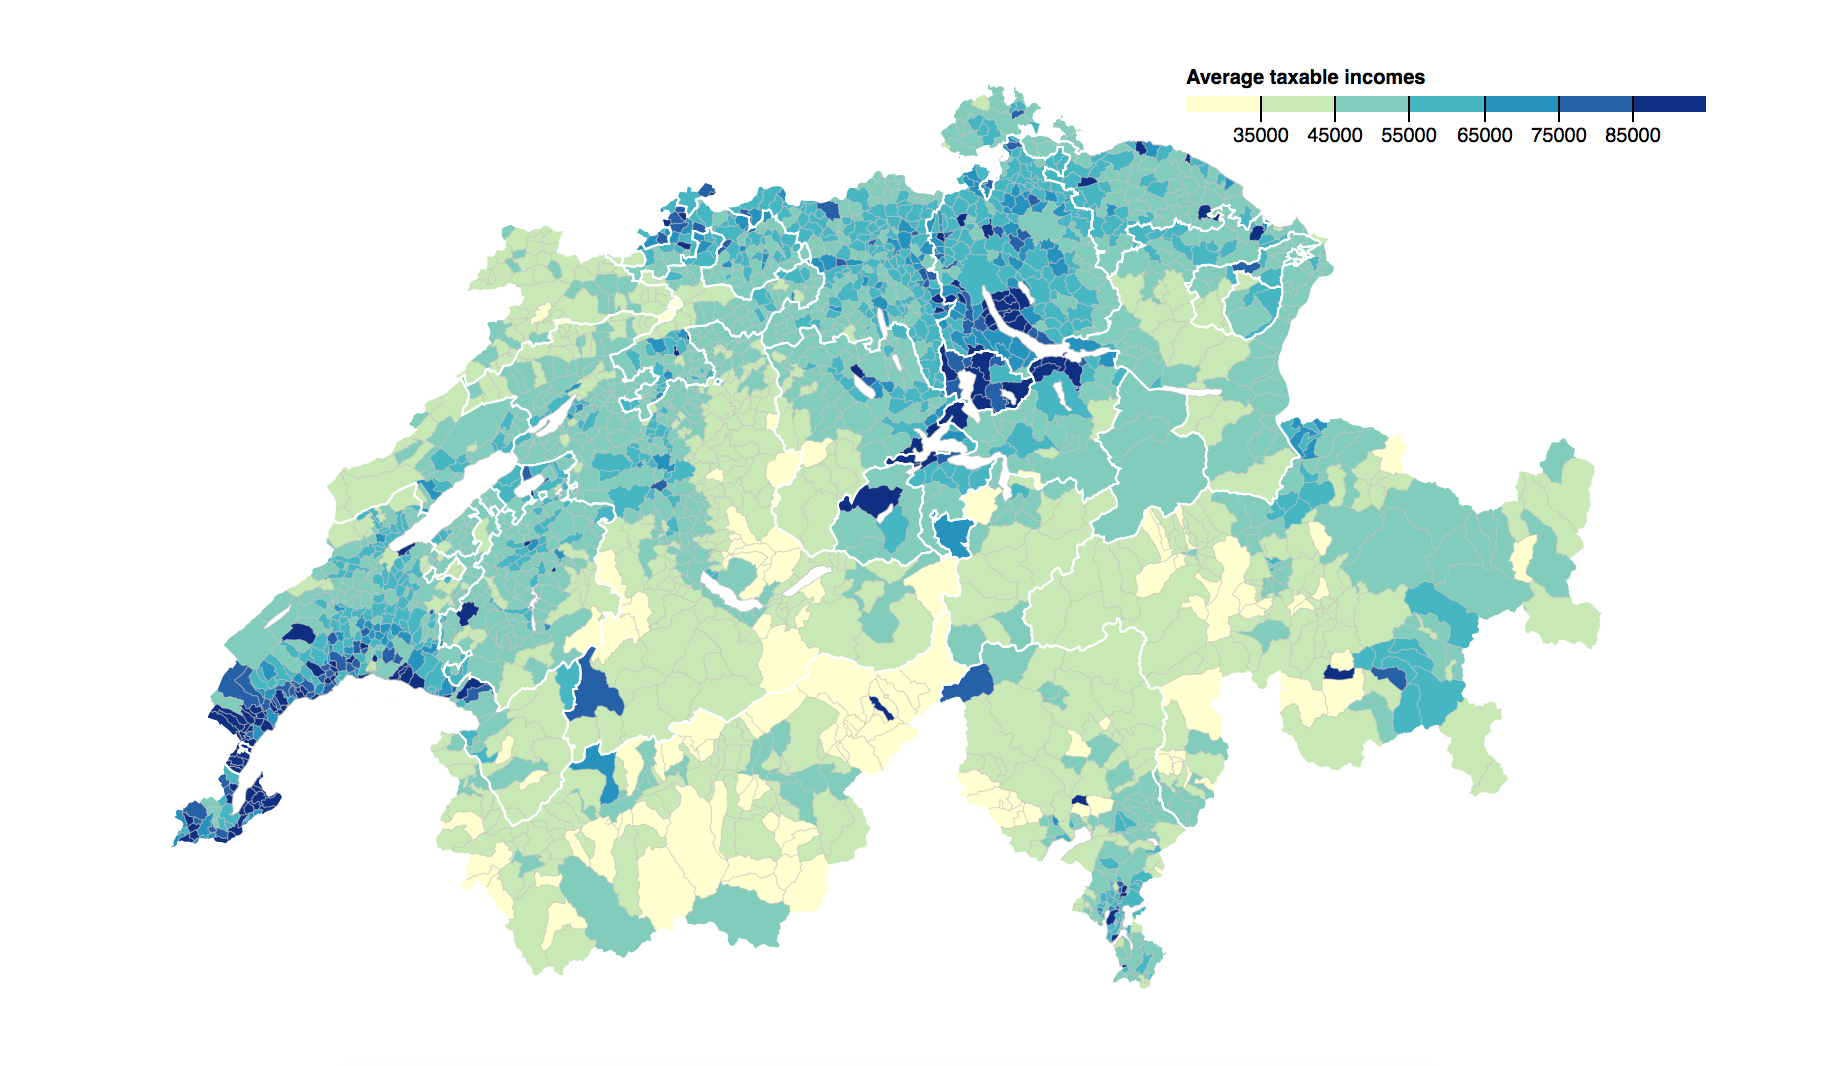 Inequality and poverty in Switzerland